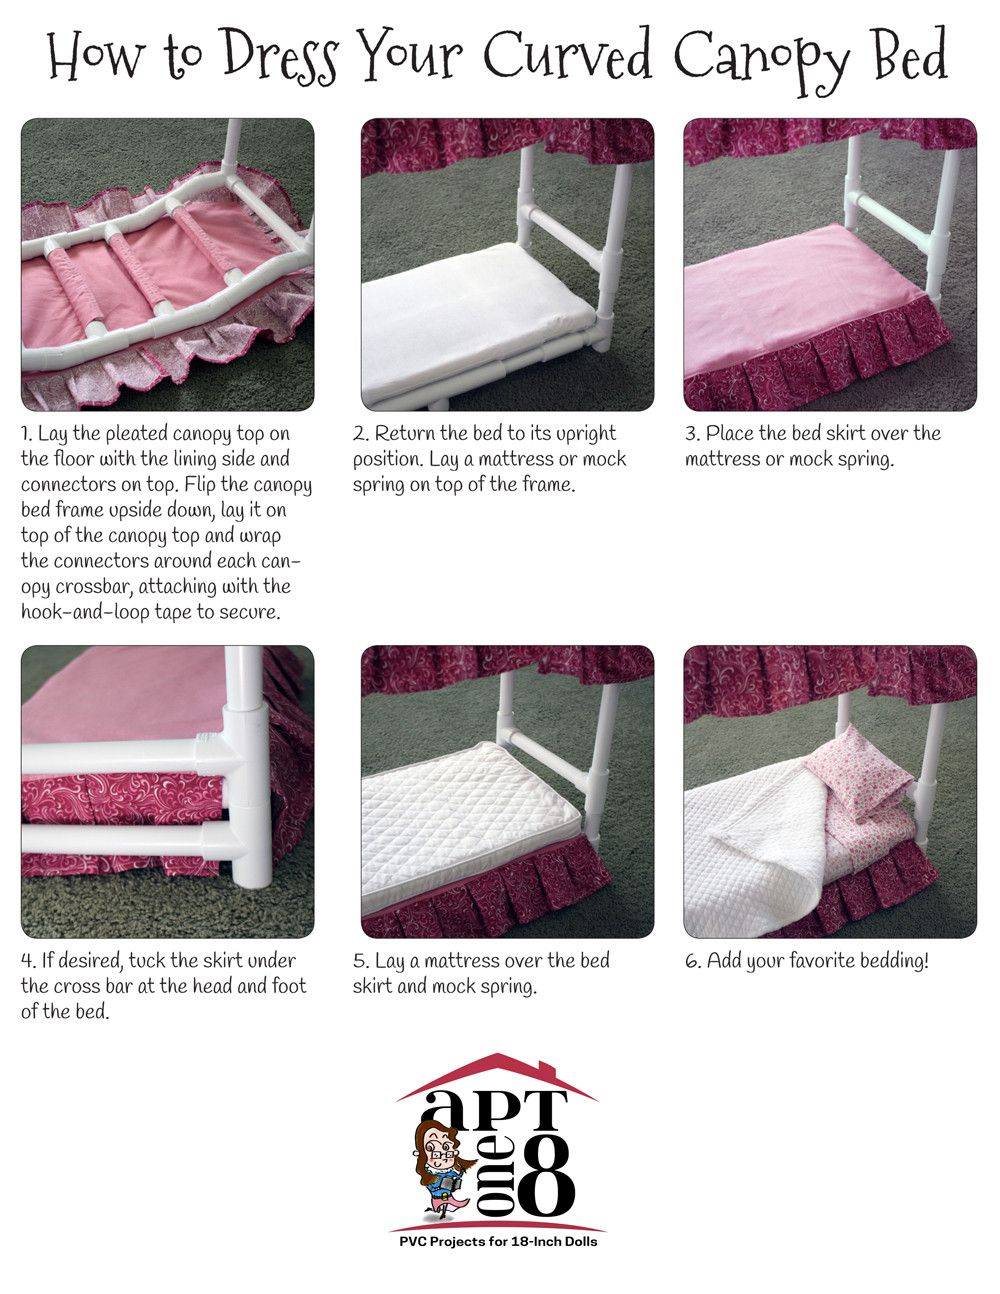 curved canopy bed on suite dreams collection curved canopy bed pvc pattern for 18 inch dolls dolls 18 inch doll accessories 18 inch doll curved canopy bed pvc pattern for 18